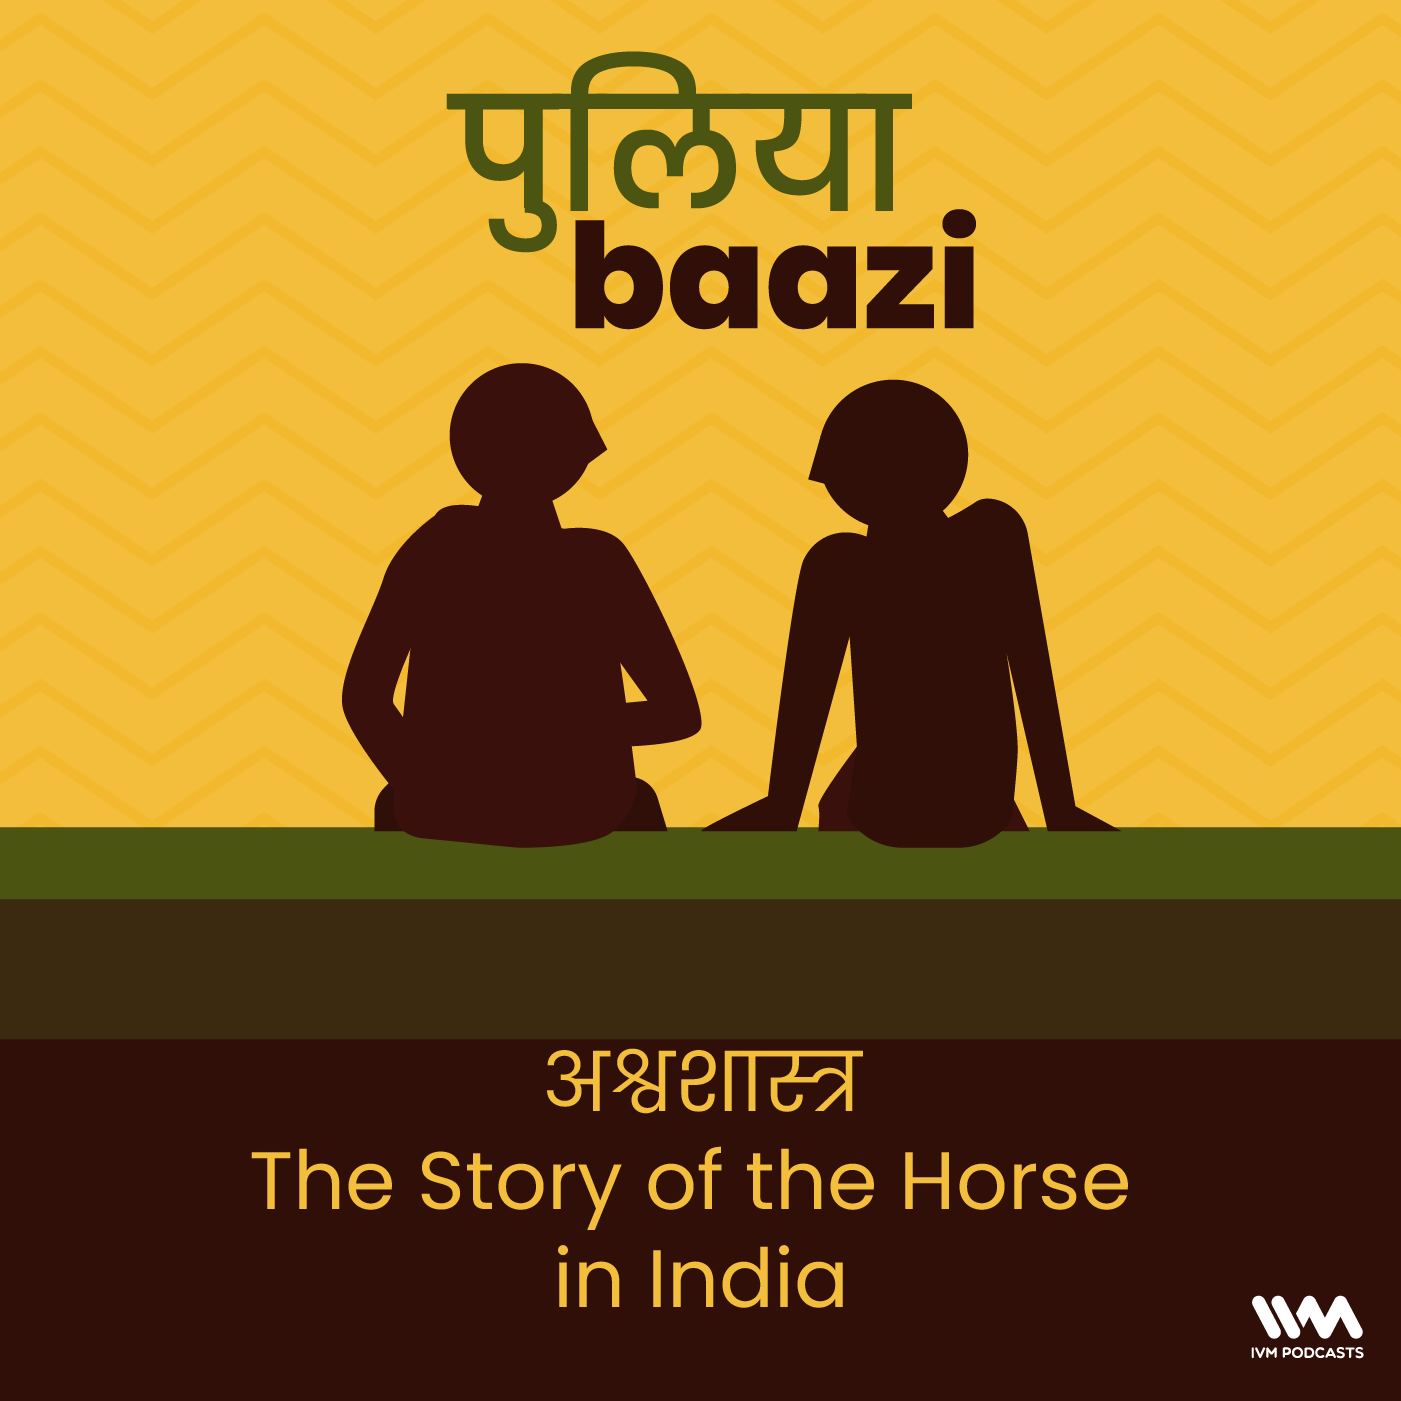 Ep. 92: अश्वशास्त्र. The Story of the Horse in India.